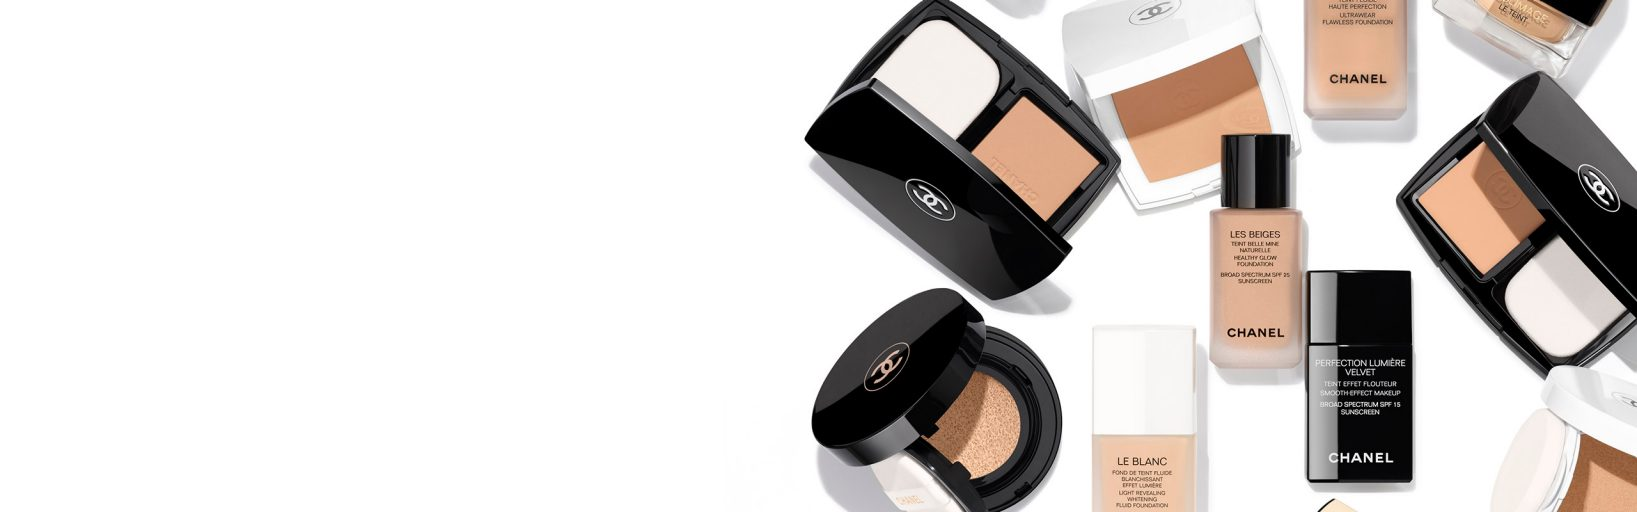 Foundations - CHANEL